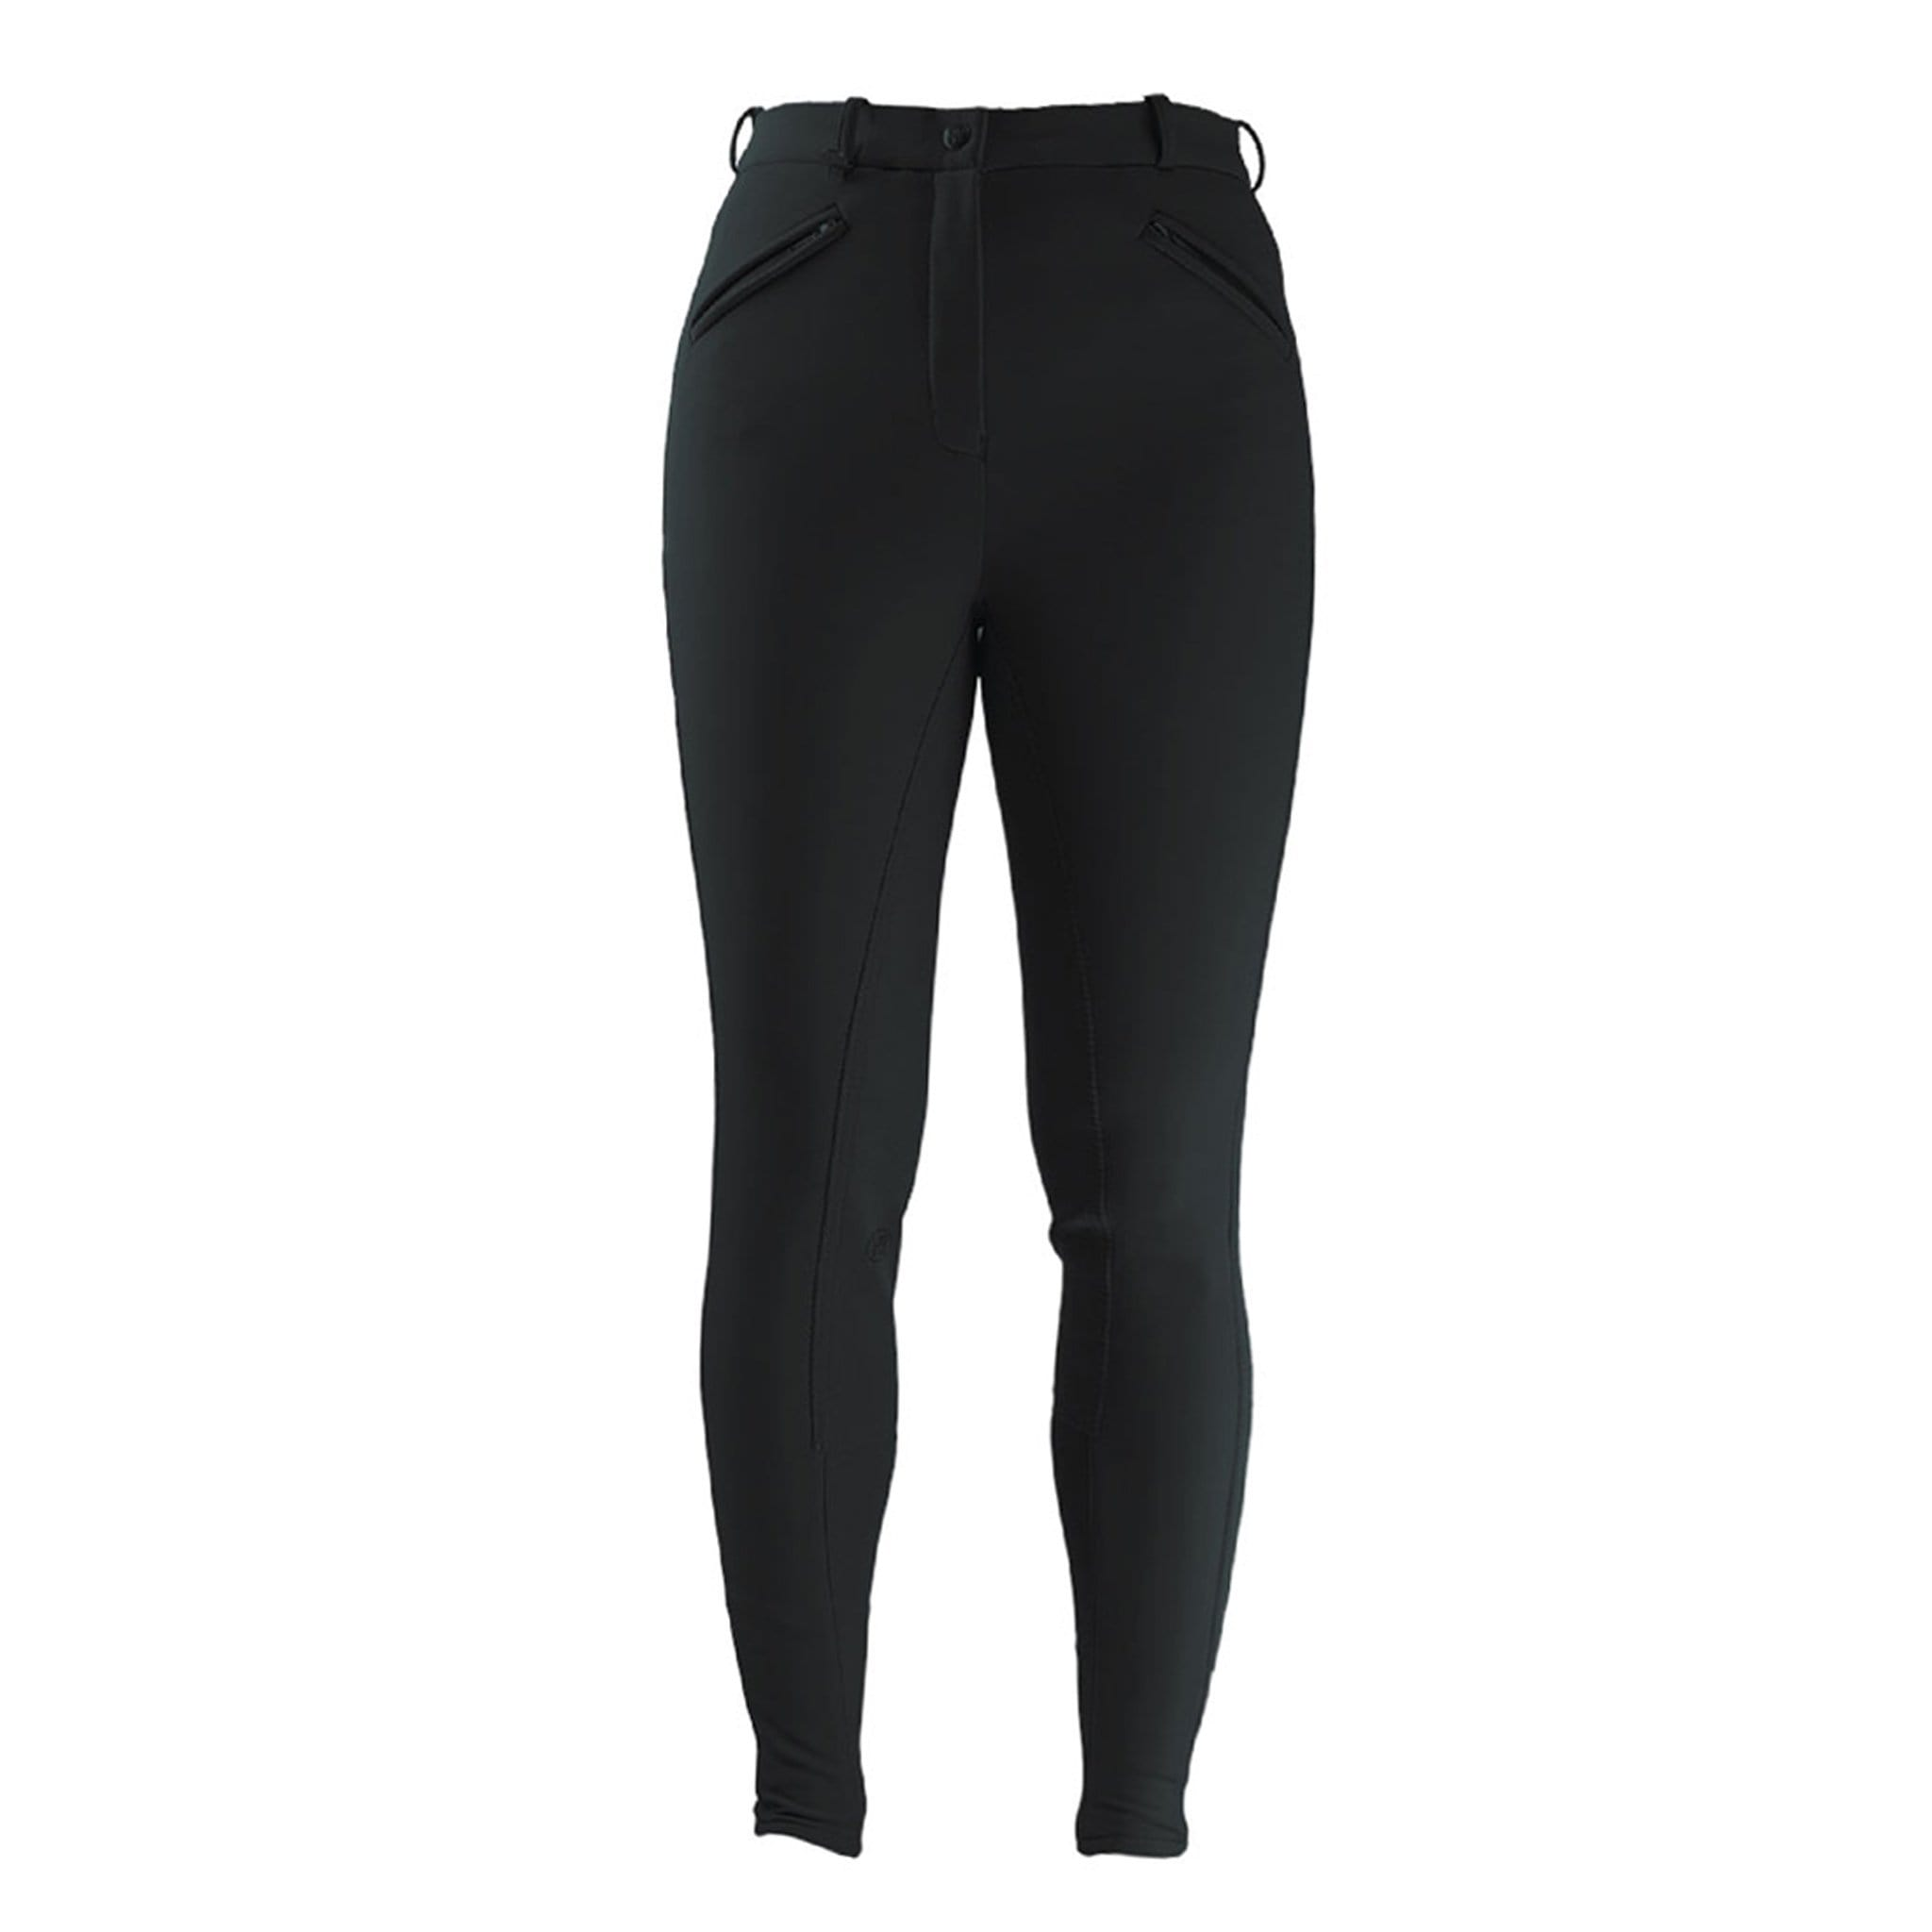 HyPerformance Winter Softshell Alos Full Seat Breeches Black Front 4138